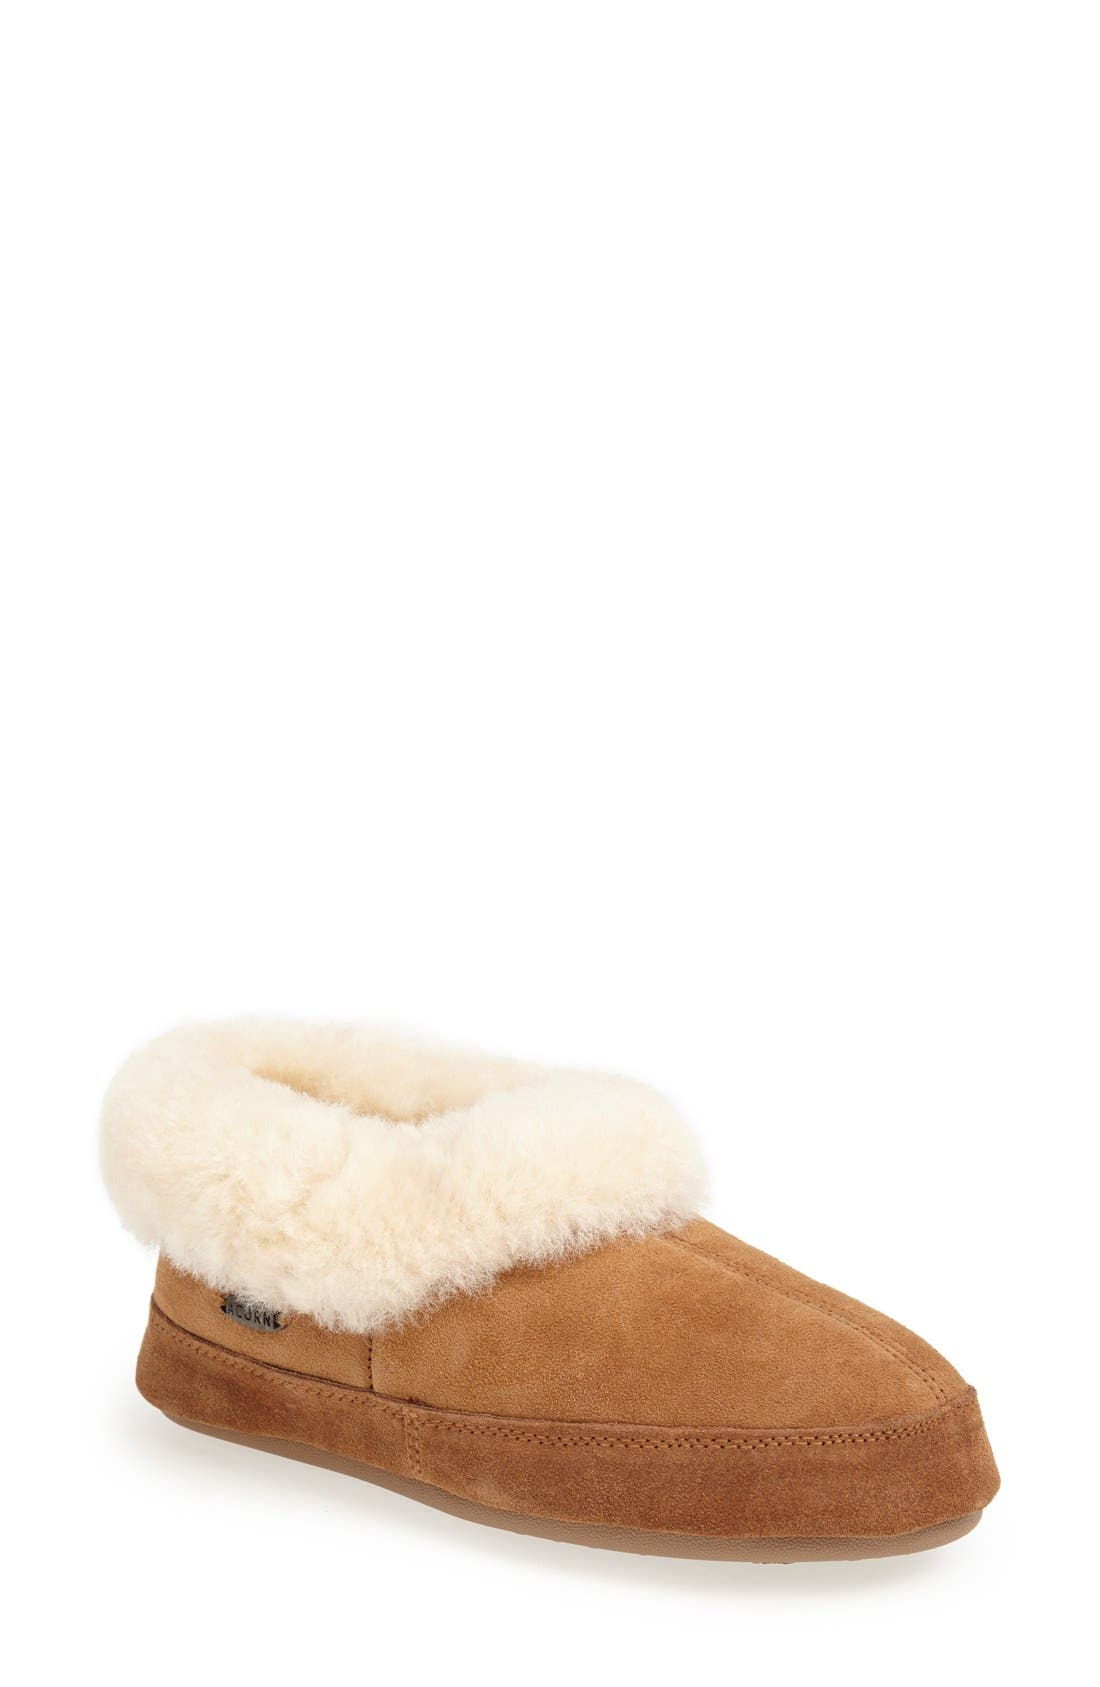 Acorn 'Oh Ewe II' Genuine Sheepskin Slipper (Women)